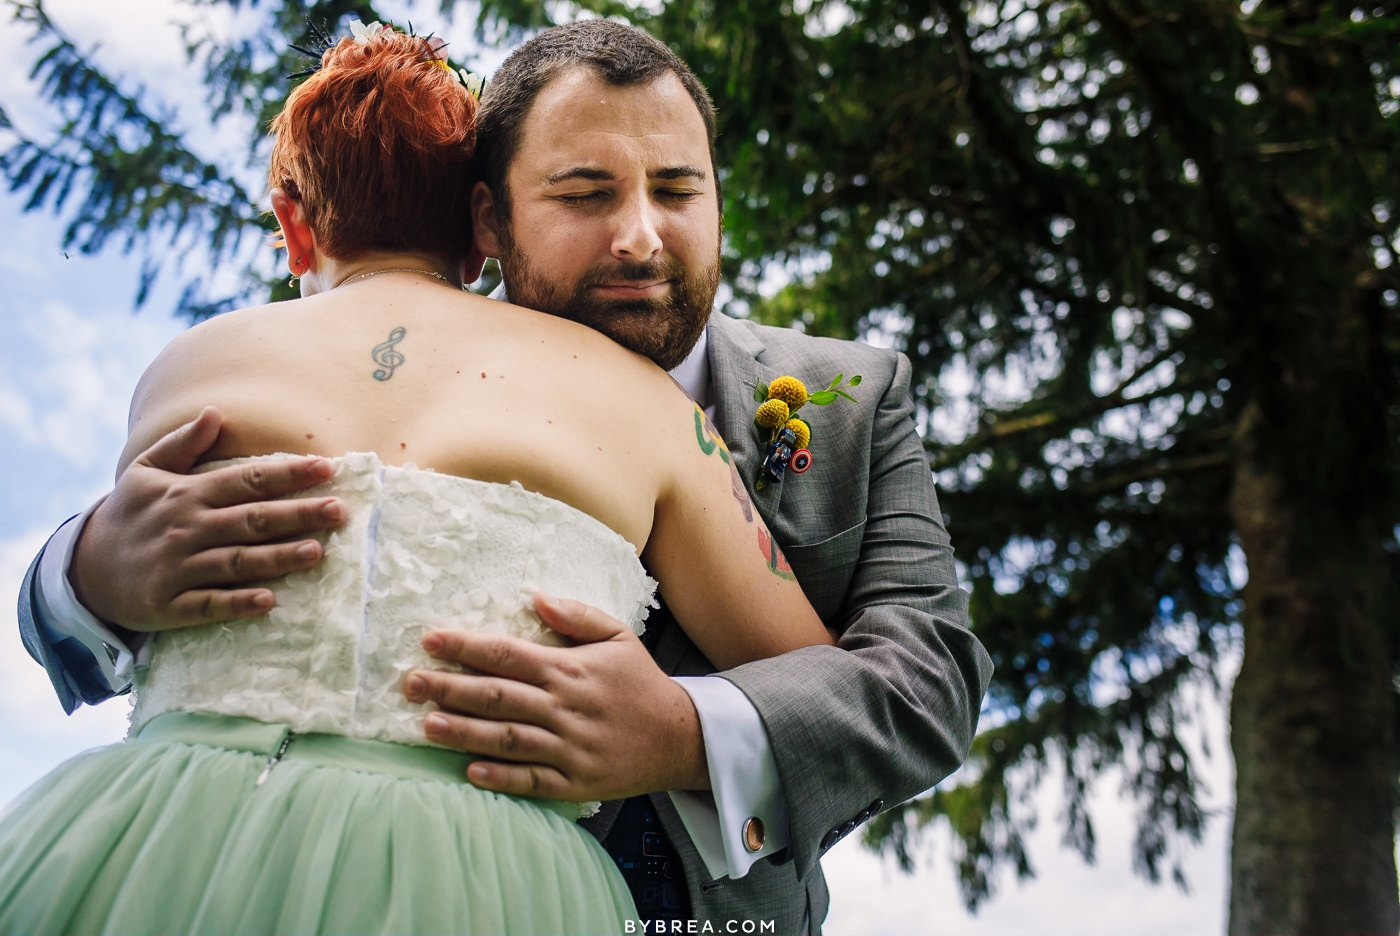 First look at Caboose Farm Wedding